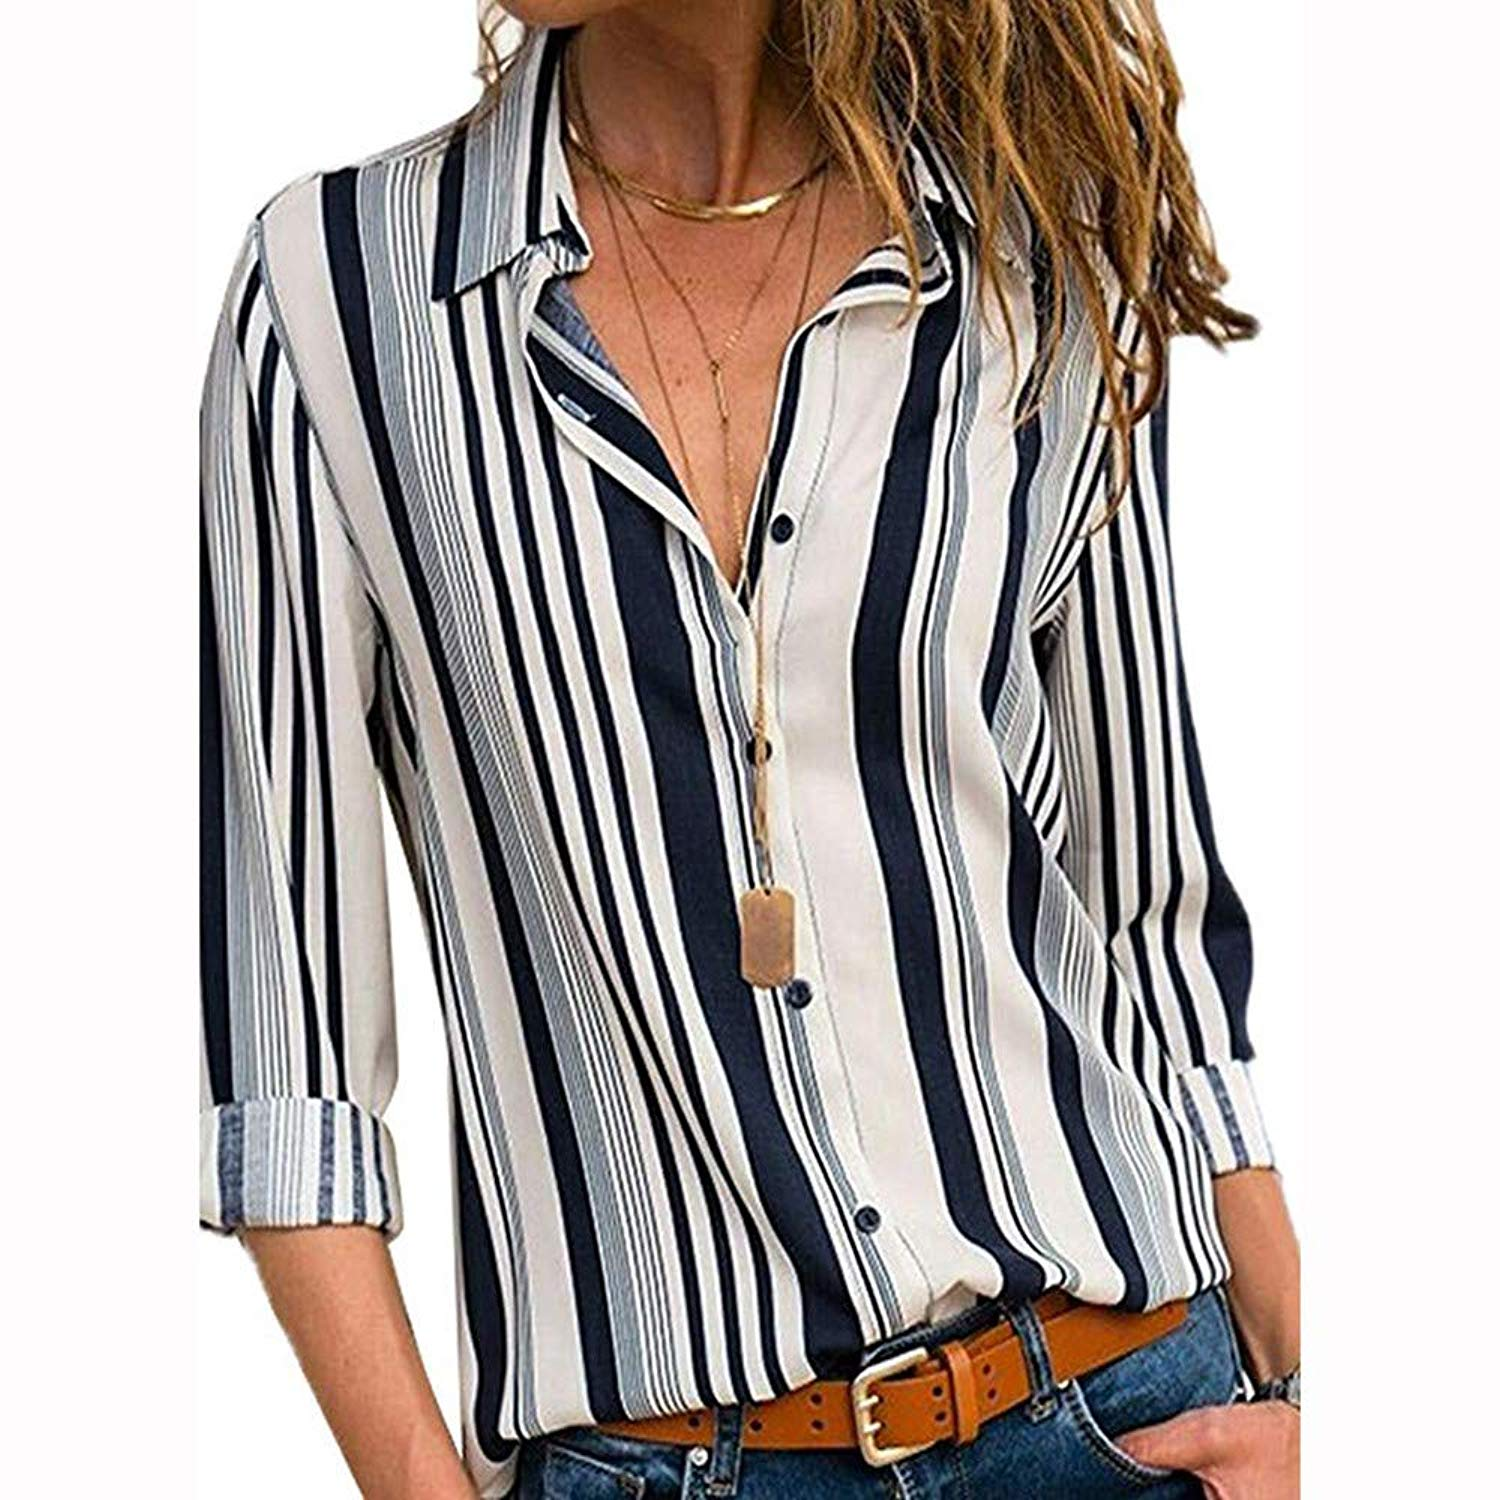 d4acbd0697 Get Quotations · FRana Blouses for Women Long Sleeve Shirts Casual Tops T  Shirt Sexy Striped Henley Shirts Tunics